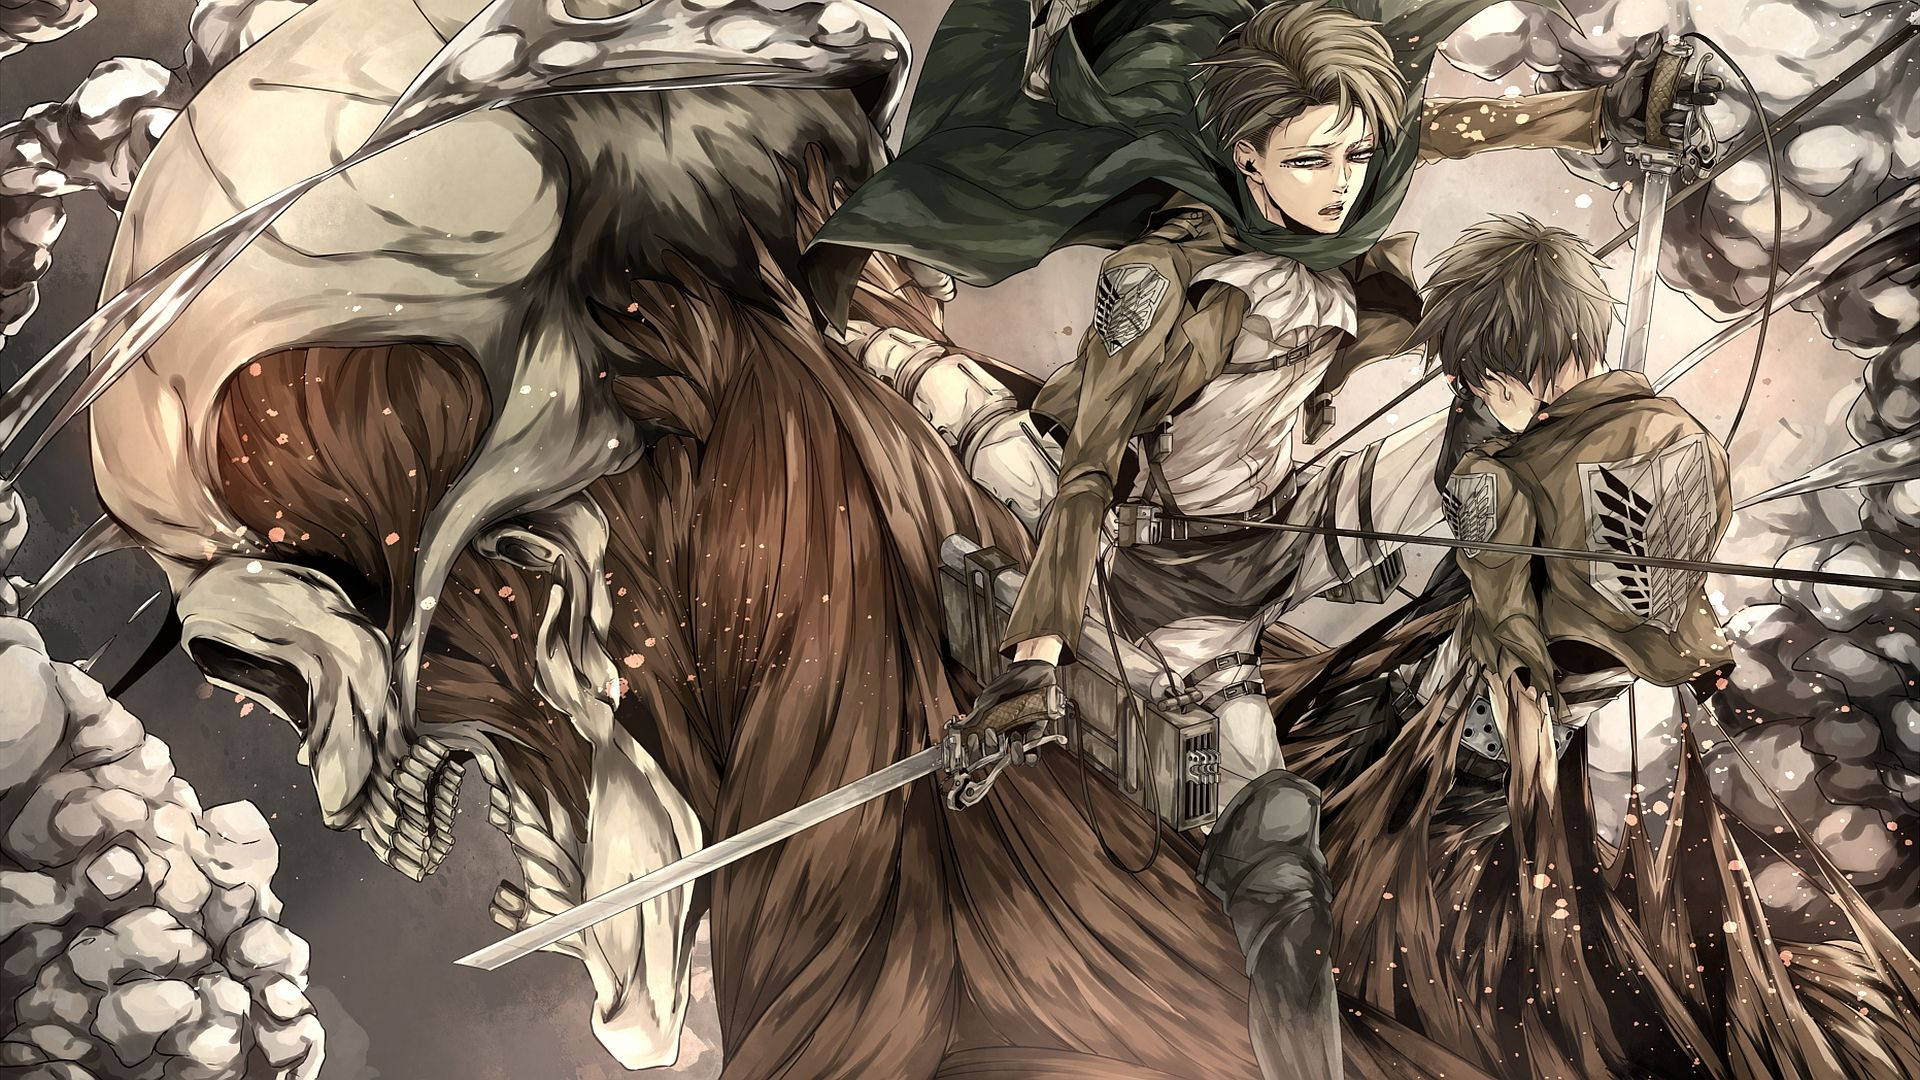 Anime Attack On Titan Levi Ackerman Wallpaper Sfondi